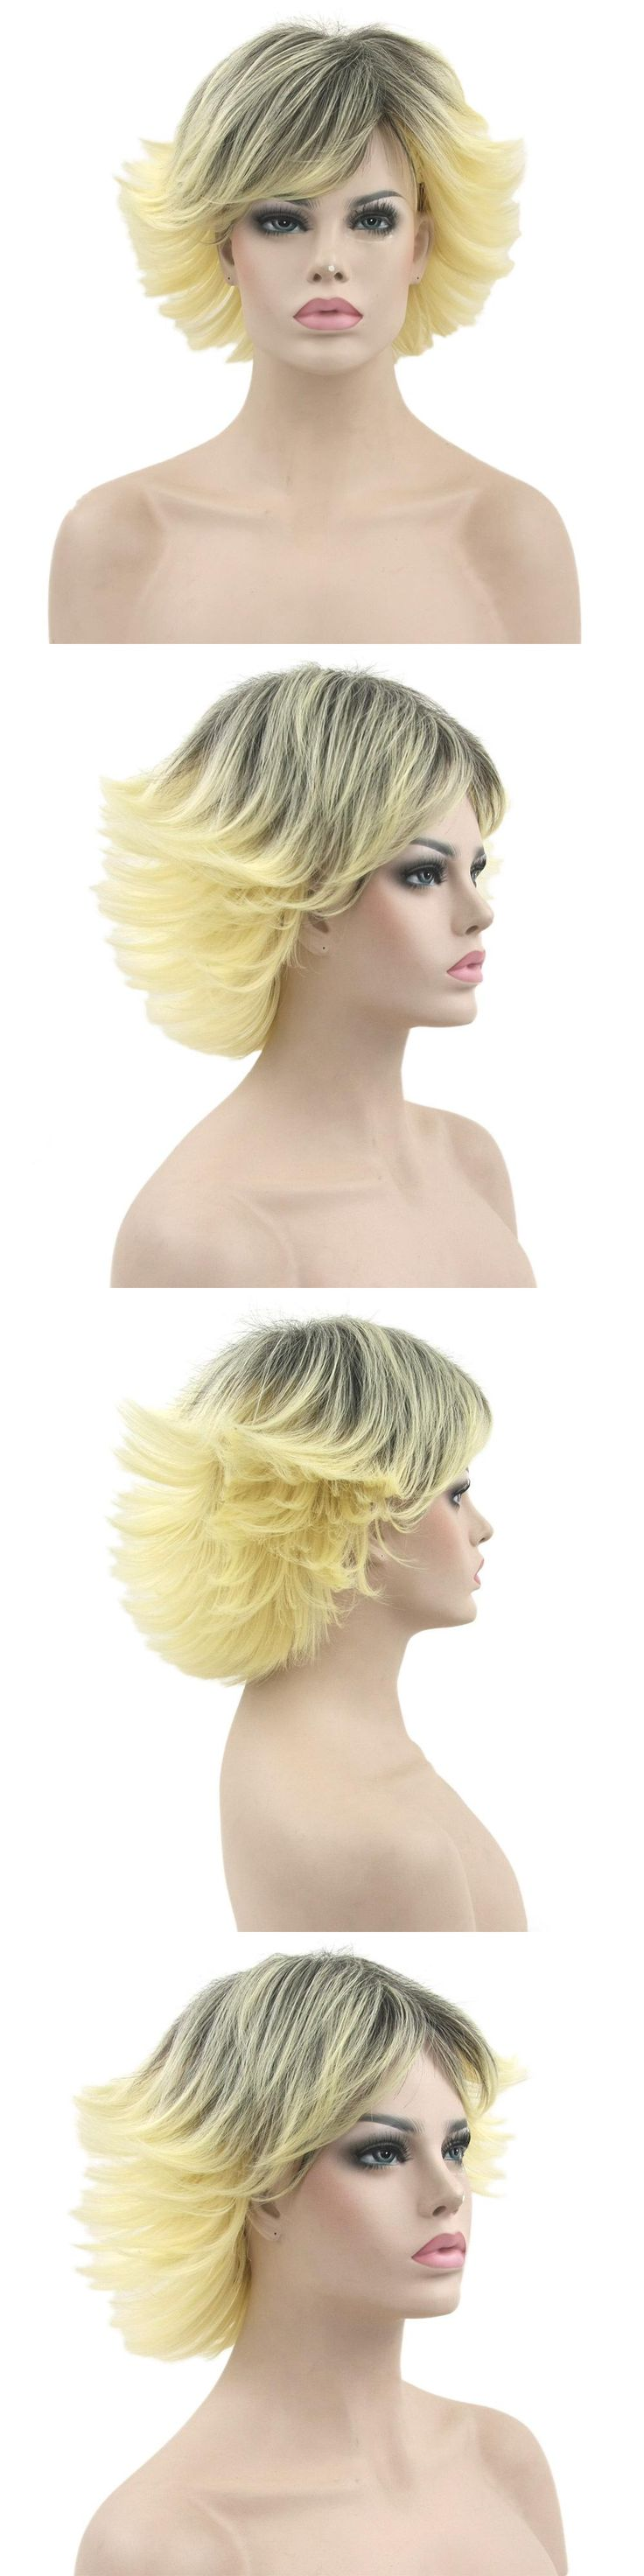 Soloowigs Kinky Straight Black Blonde Ombre Synthetic Hair Woman Wigs Short Full Lace Hairpieces Puffy hair Style